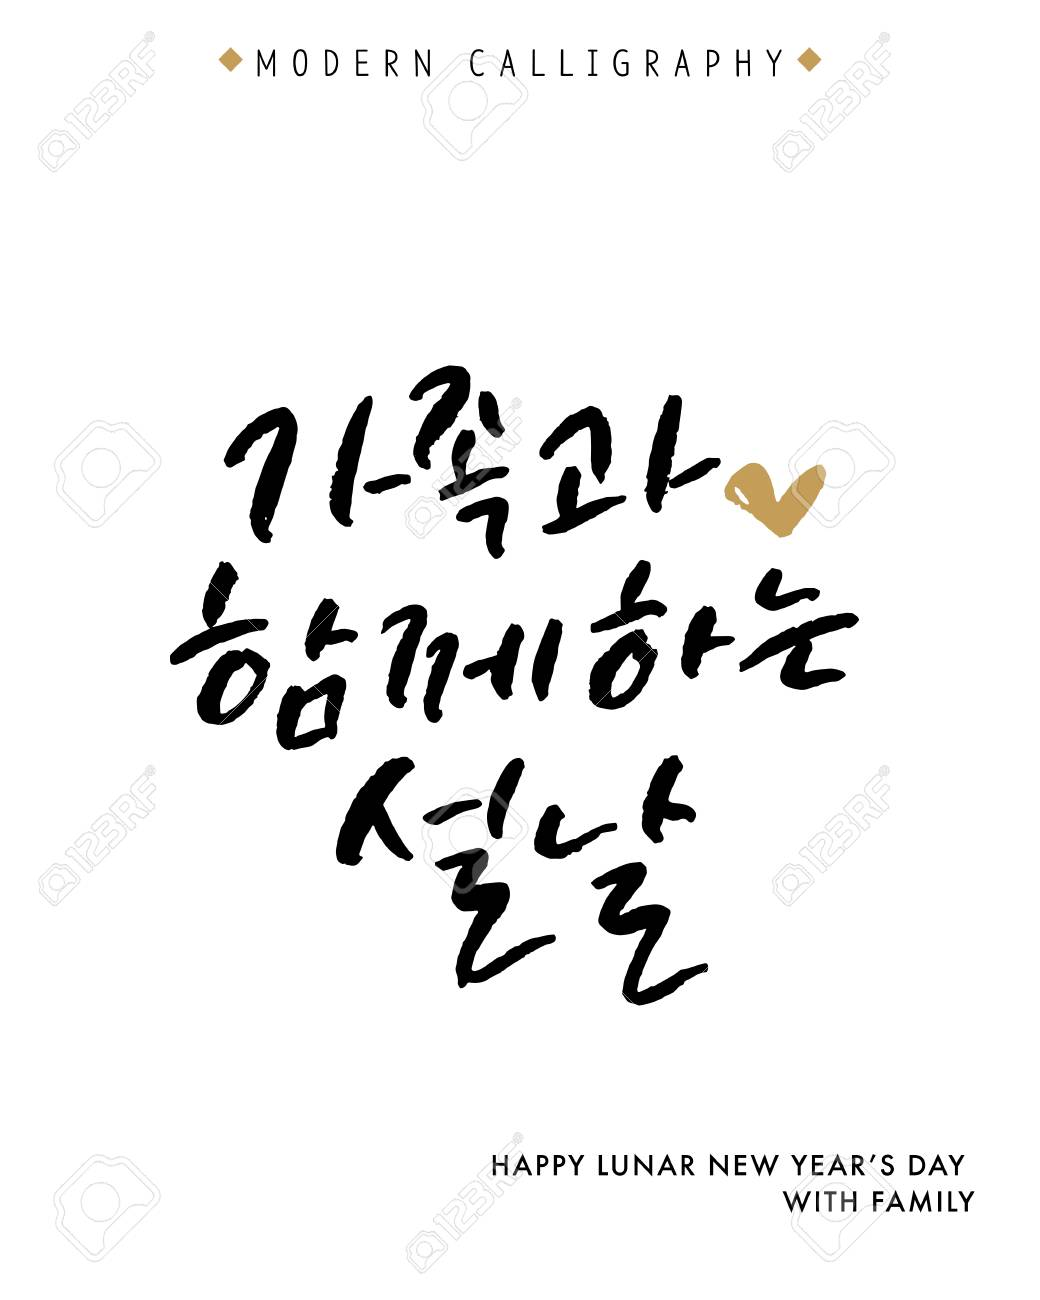 handmade products stationery party supplies hand lettered korean